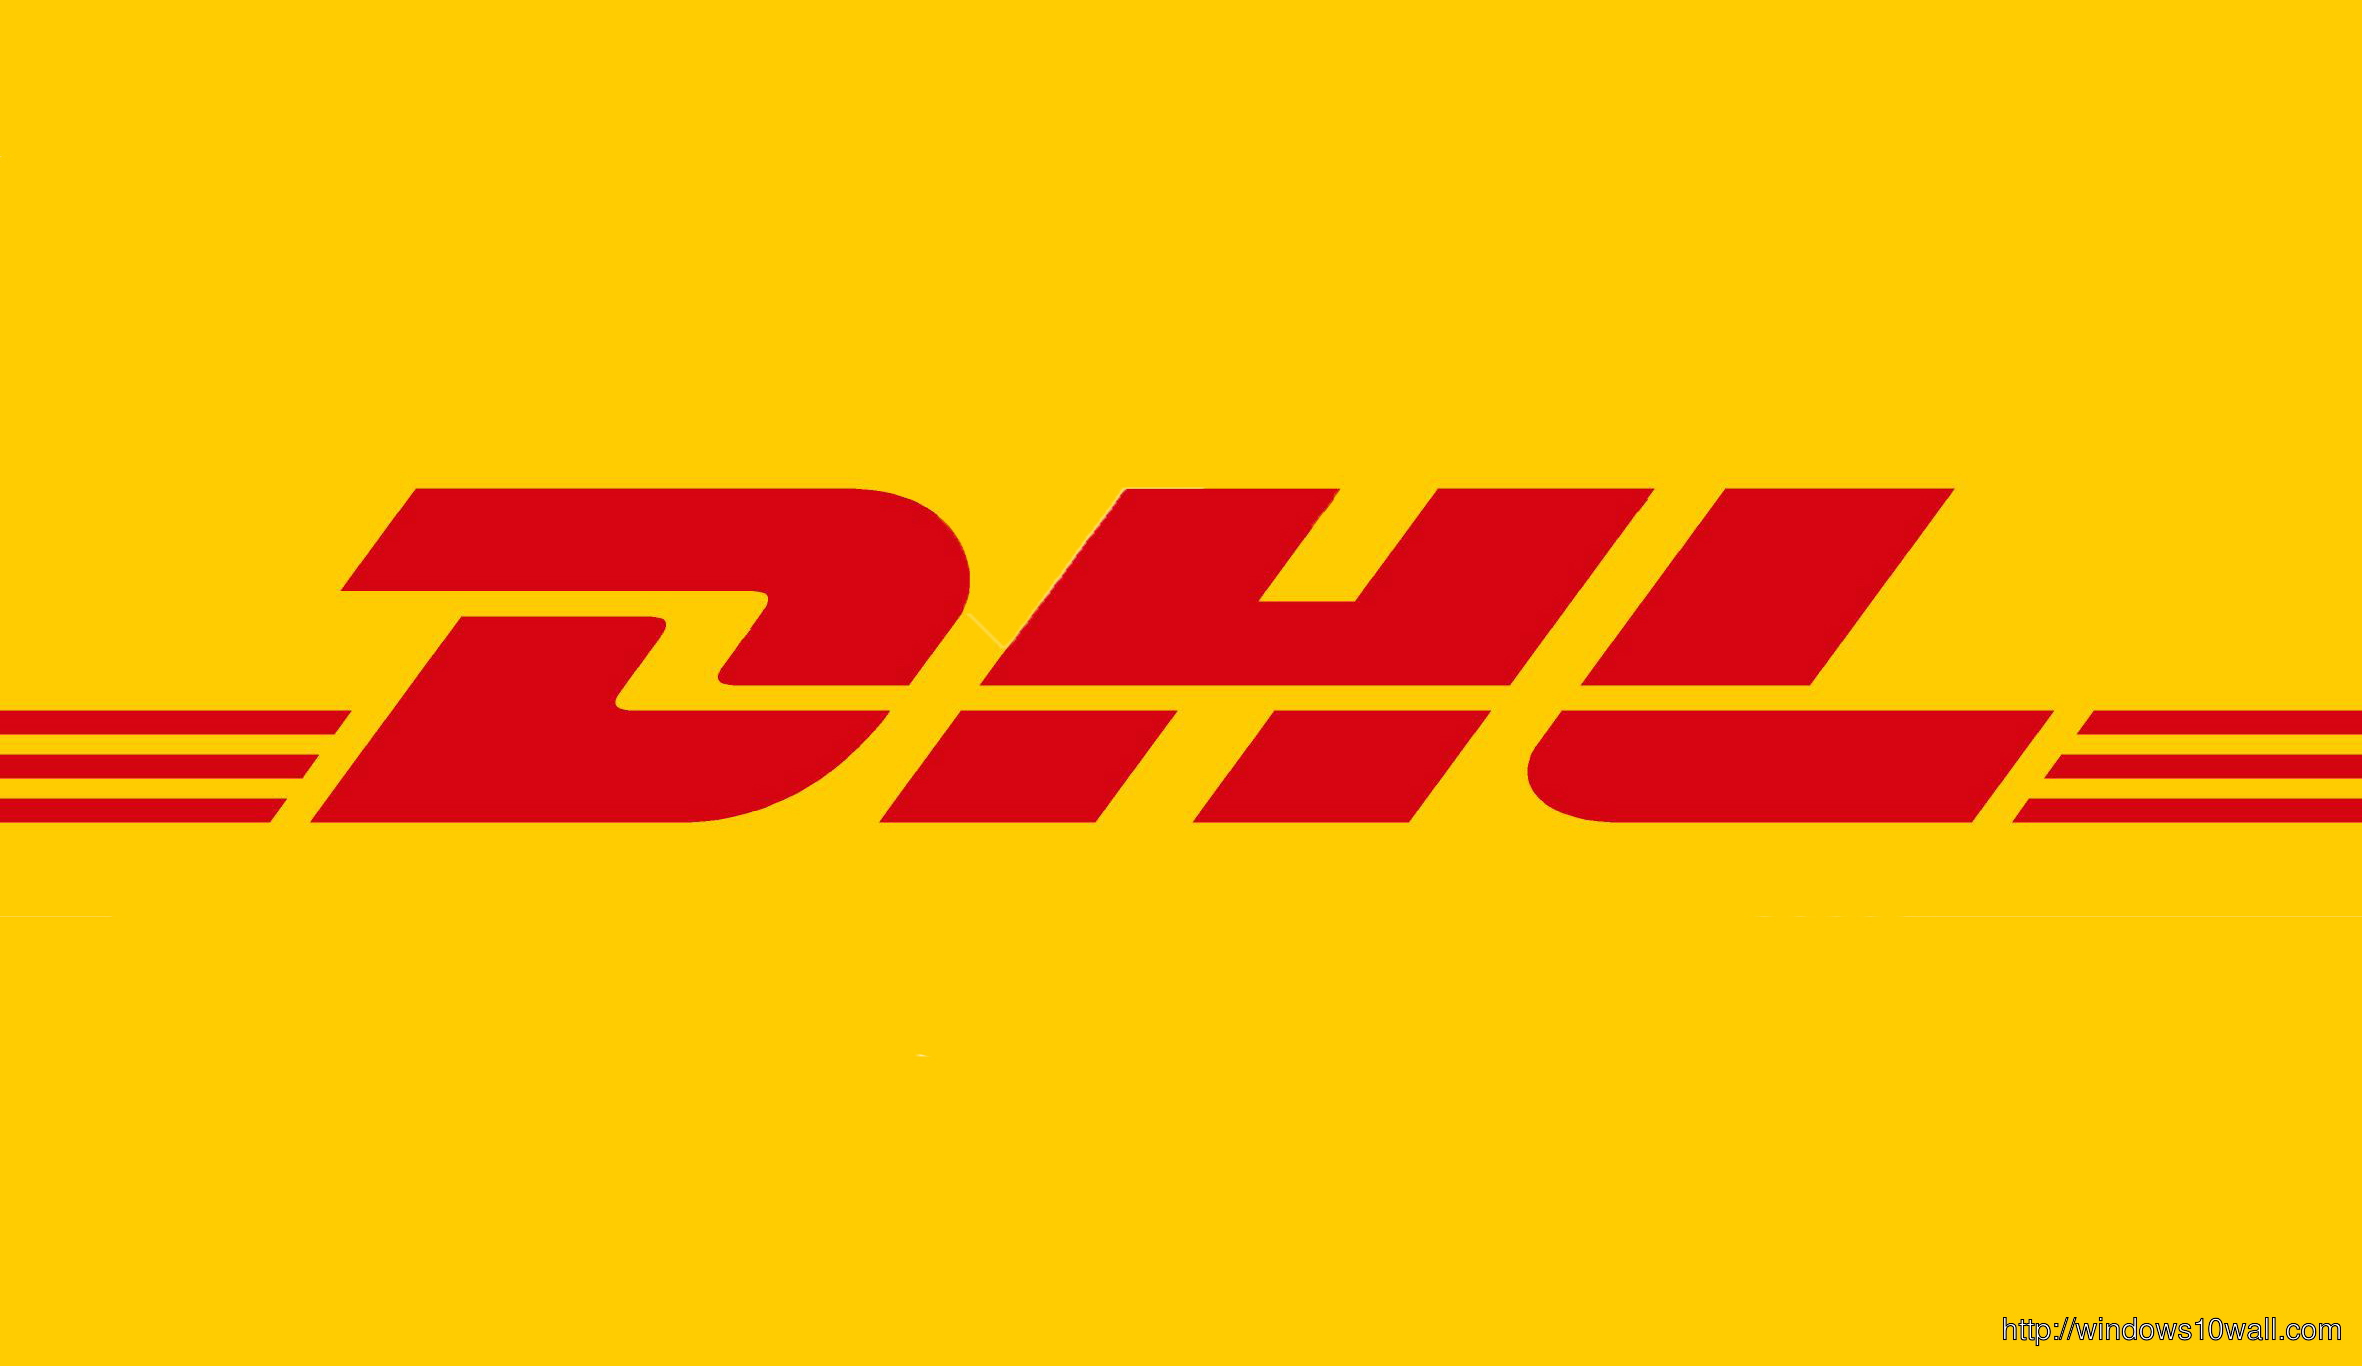 Dhl Express Yellow Logo Desktop Background Wallpaper